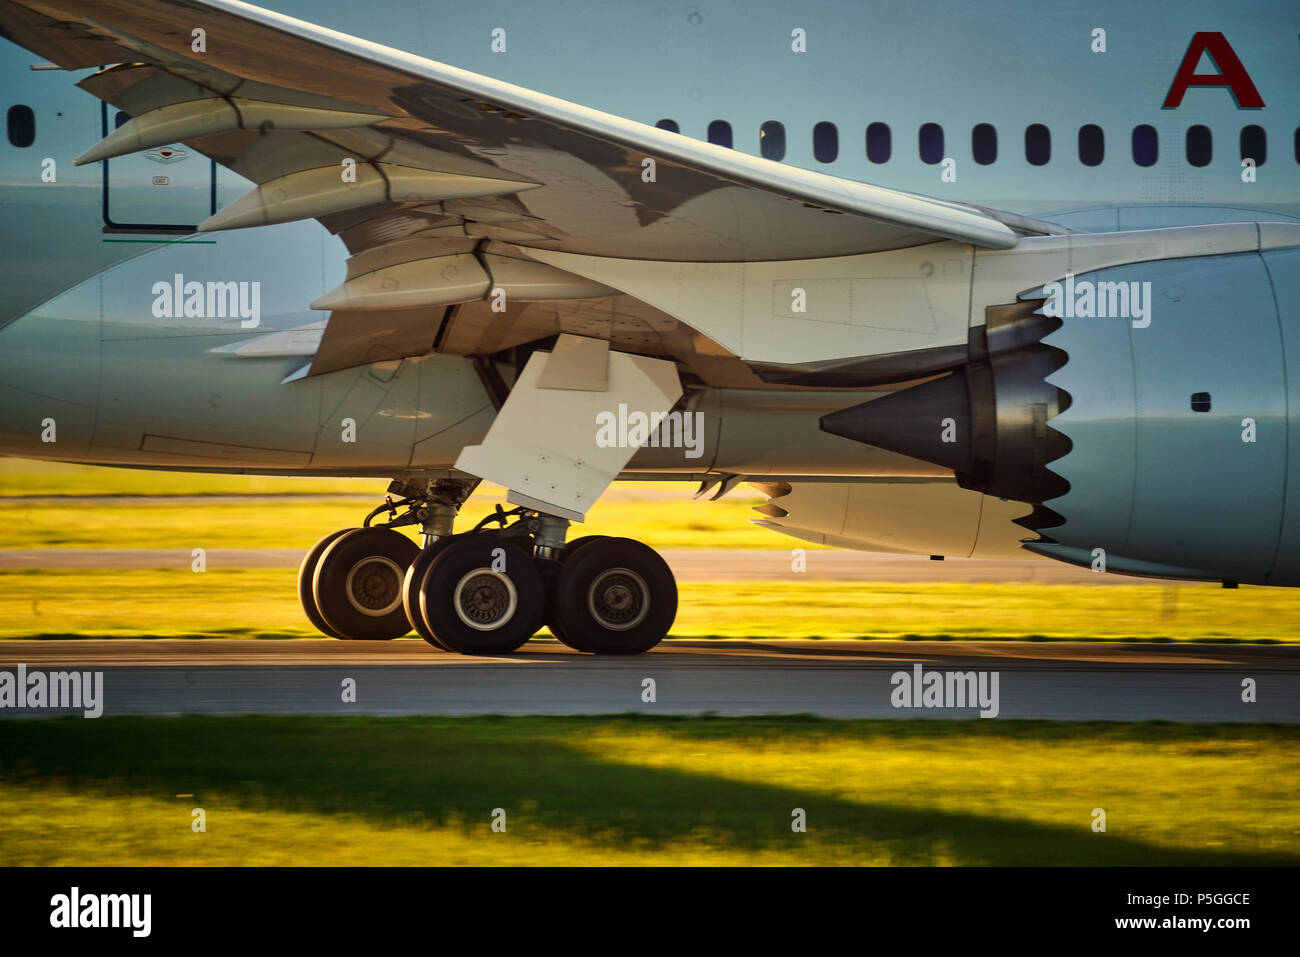 Montreal,Canada, 25 June 2018. Close-up view of landing gear on a  passenger jet lifting off from Trudeau International airport.Credit:Mario Beauregar - Stock Image